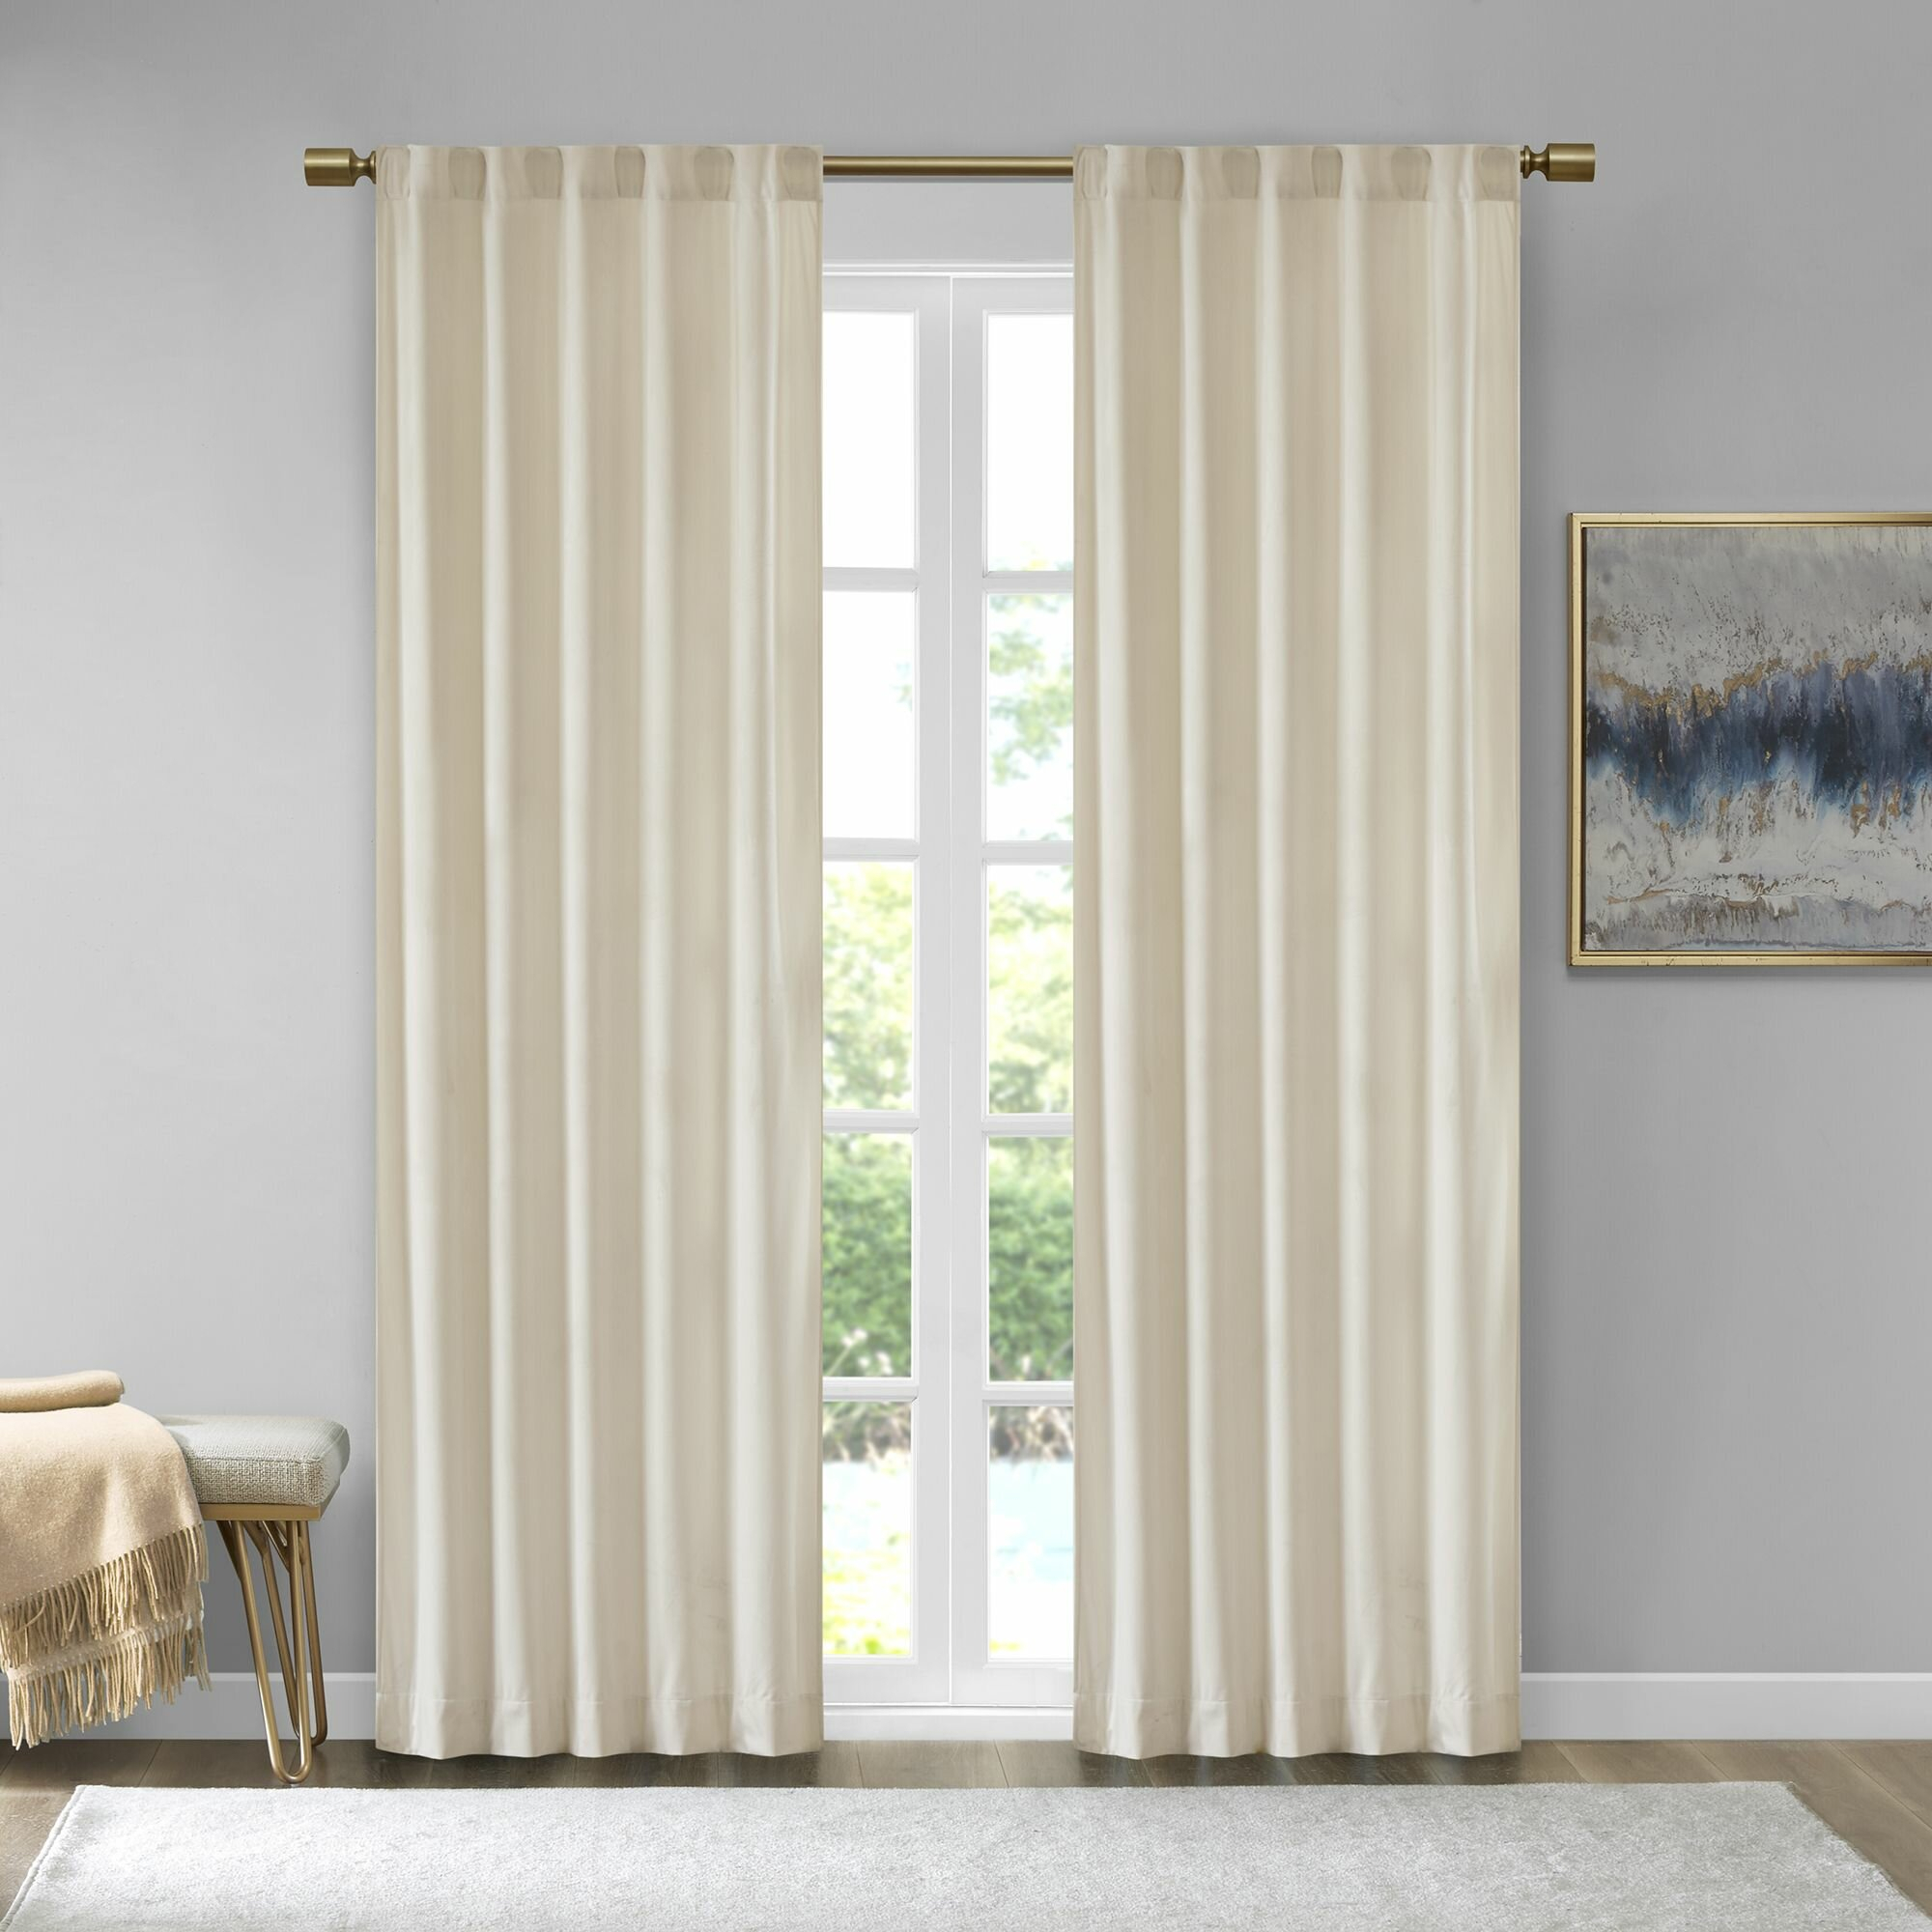 Aurora Poly Velvet Solid Room Darkening Rod Pocket/tab Top Curtain Panels Regarding Velvet Solid Room Darkening Window Curtain Panel Sets (View 13 of 30)